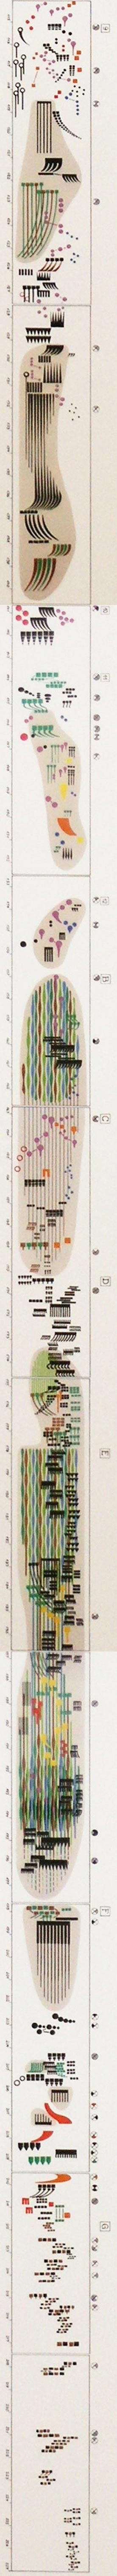 The graphical score for Artikulation 2 by Gyorgy Ligeti, an electronic composition (1958). It was produced by Rainer Wehinger in the 1970s